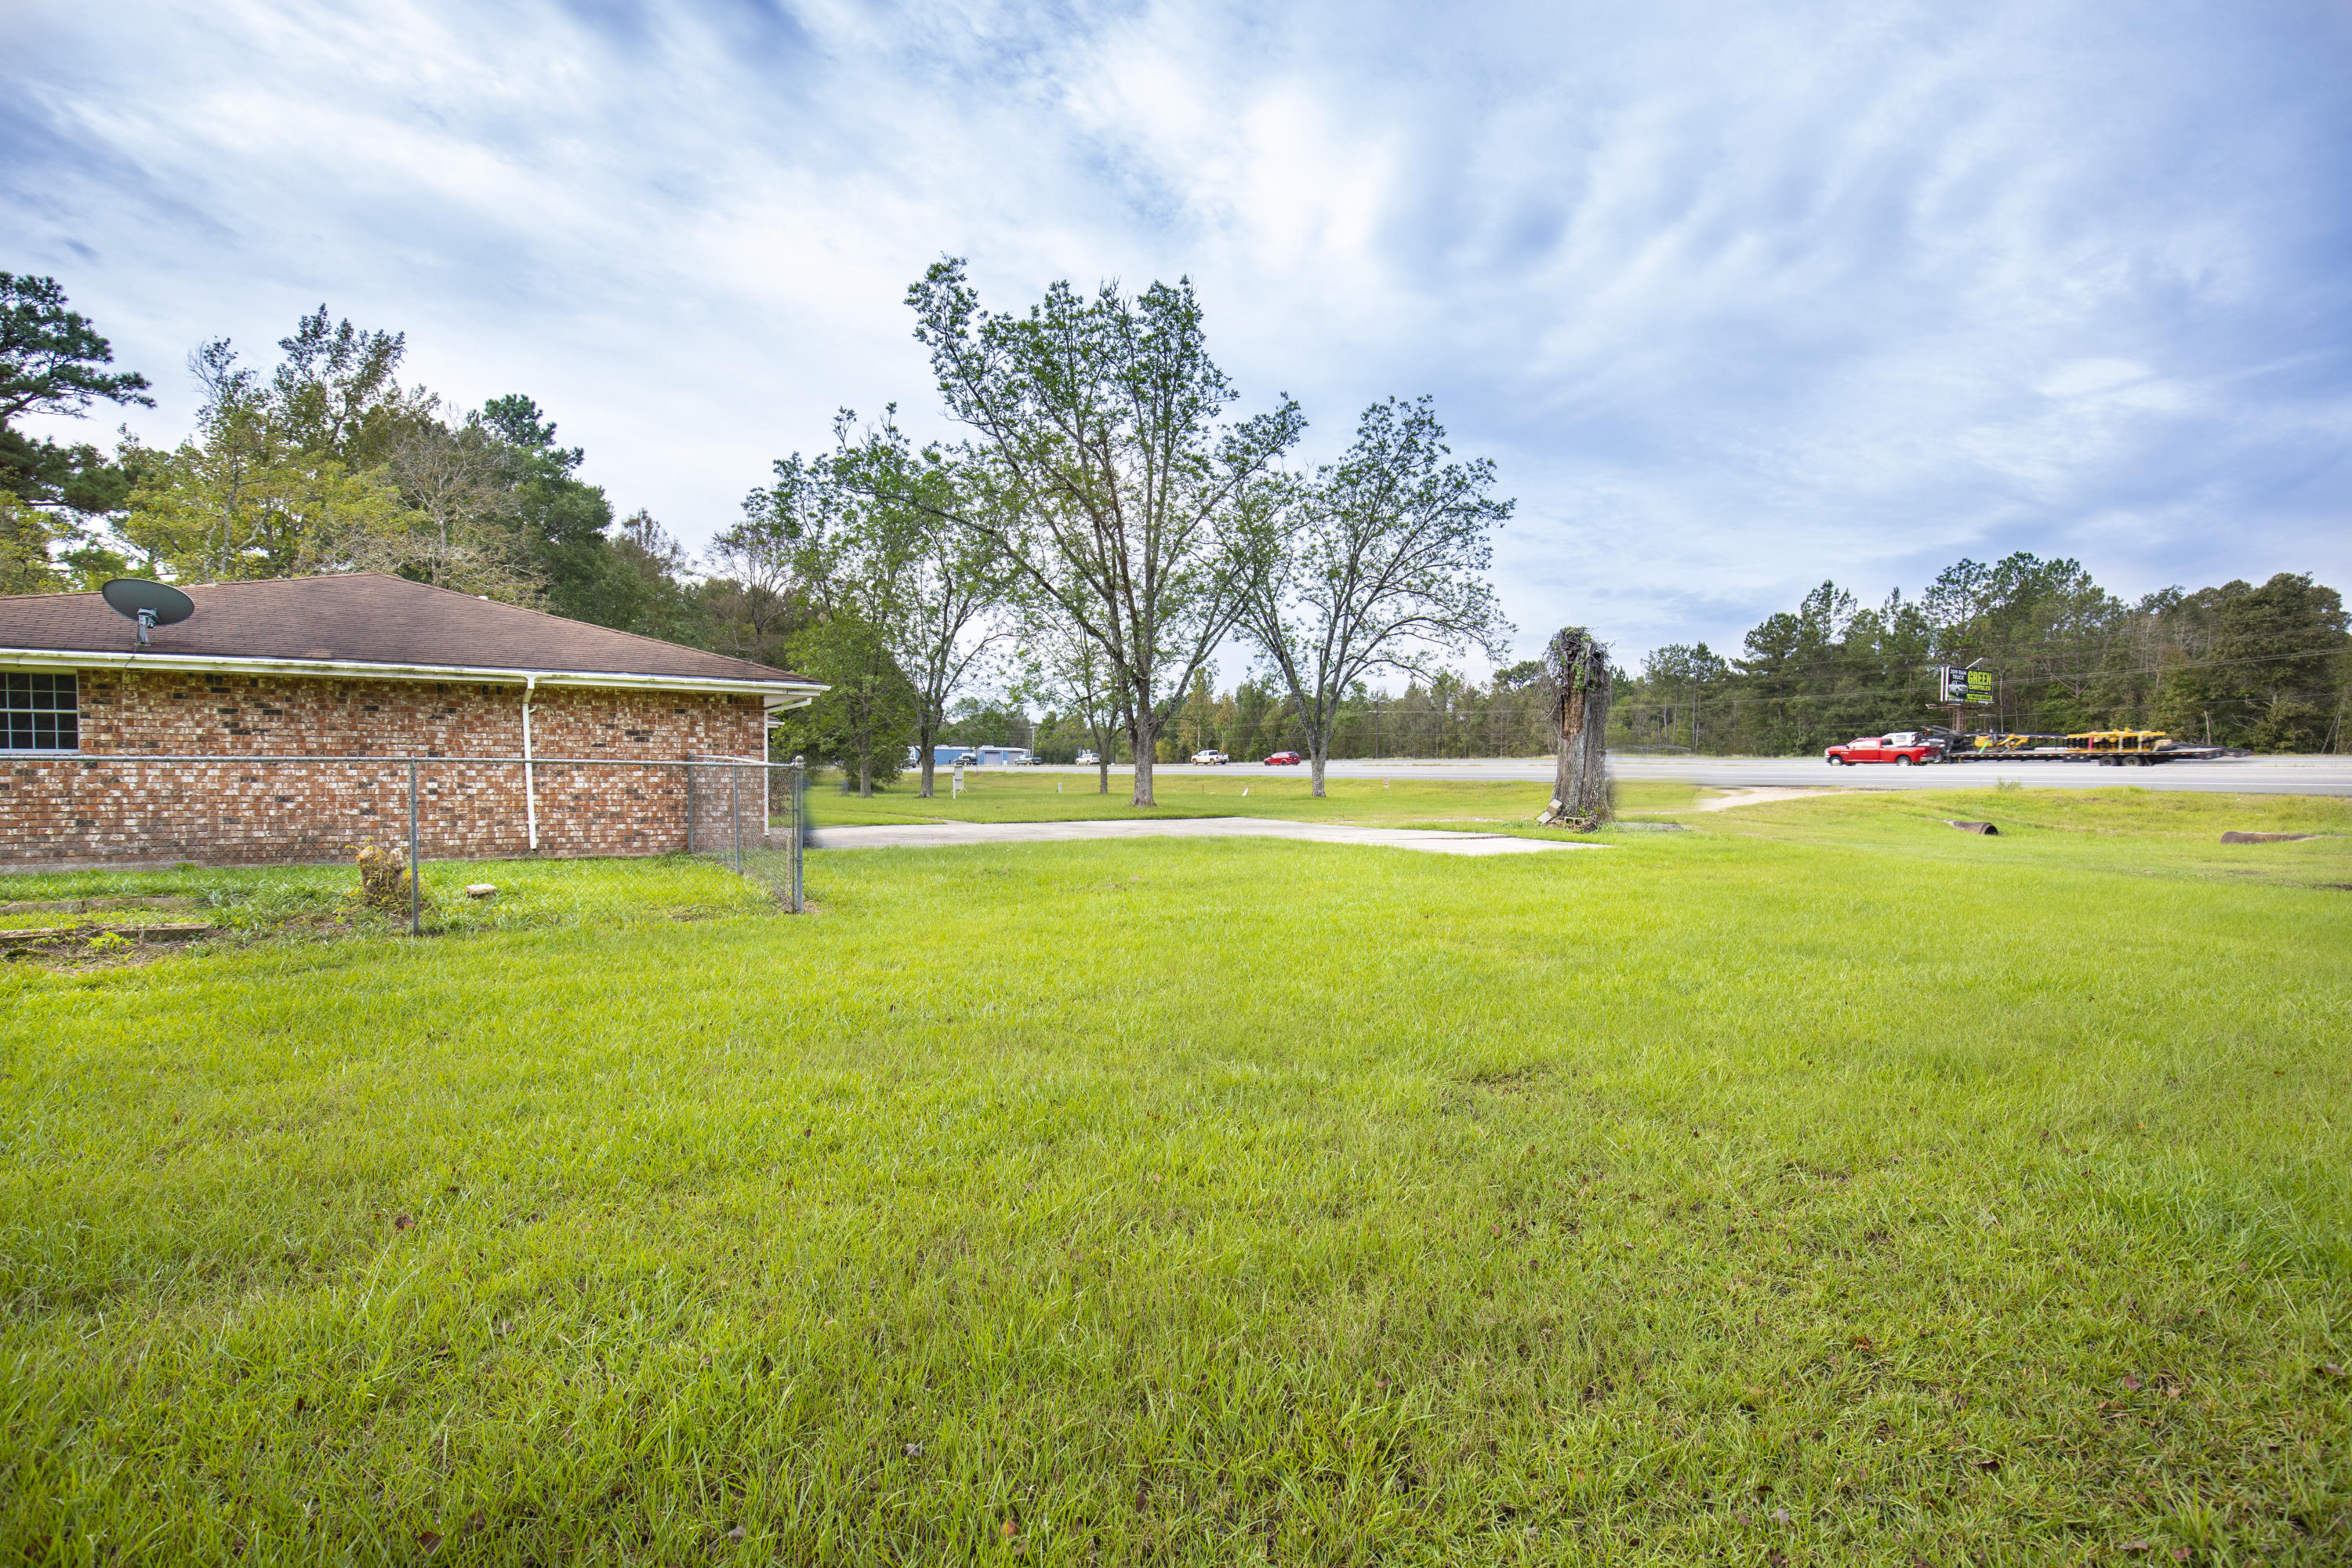 DeRidder home for sale, 19211 Lake Charles Hwy (hwy 171), DeRidder LA - $184,900